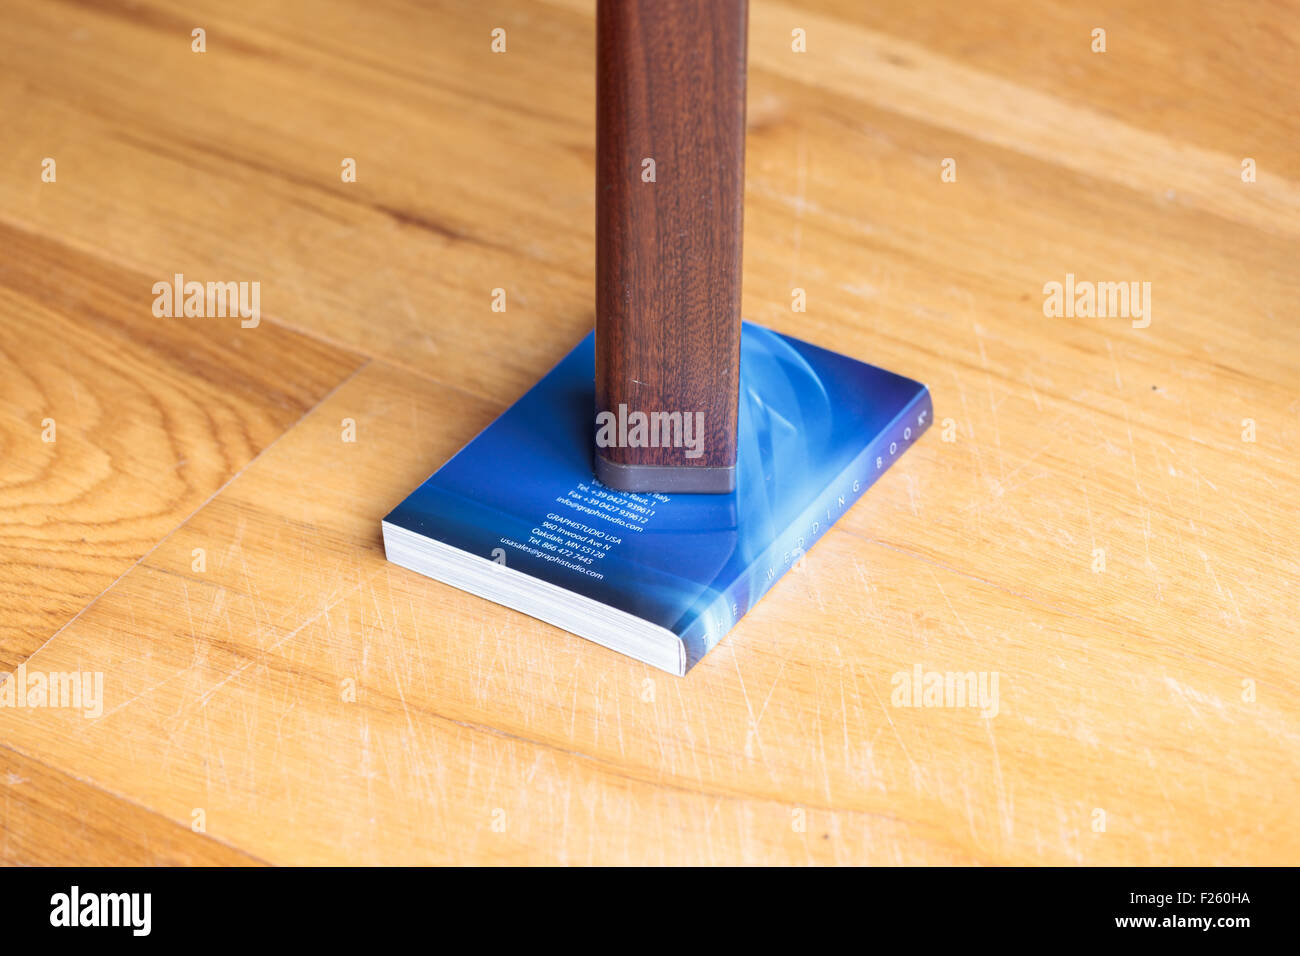 Leg of a wobbly table supported by a book Stock Photo - Alamy